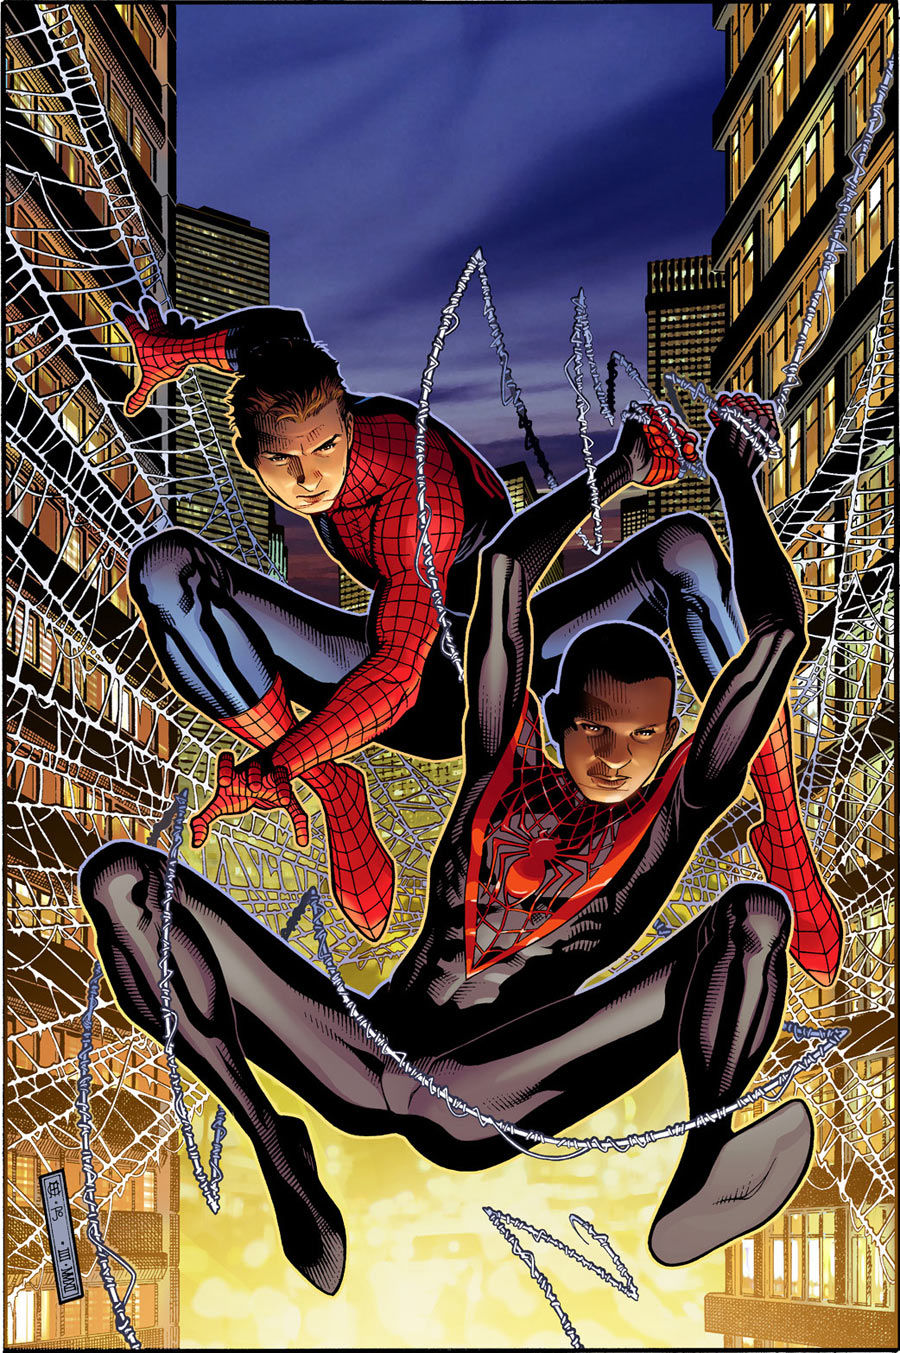 https://worldofblackheroes.files.wordpress.com/2012/04/miles-morales-and-peter-parker.jpg